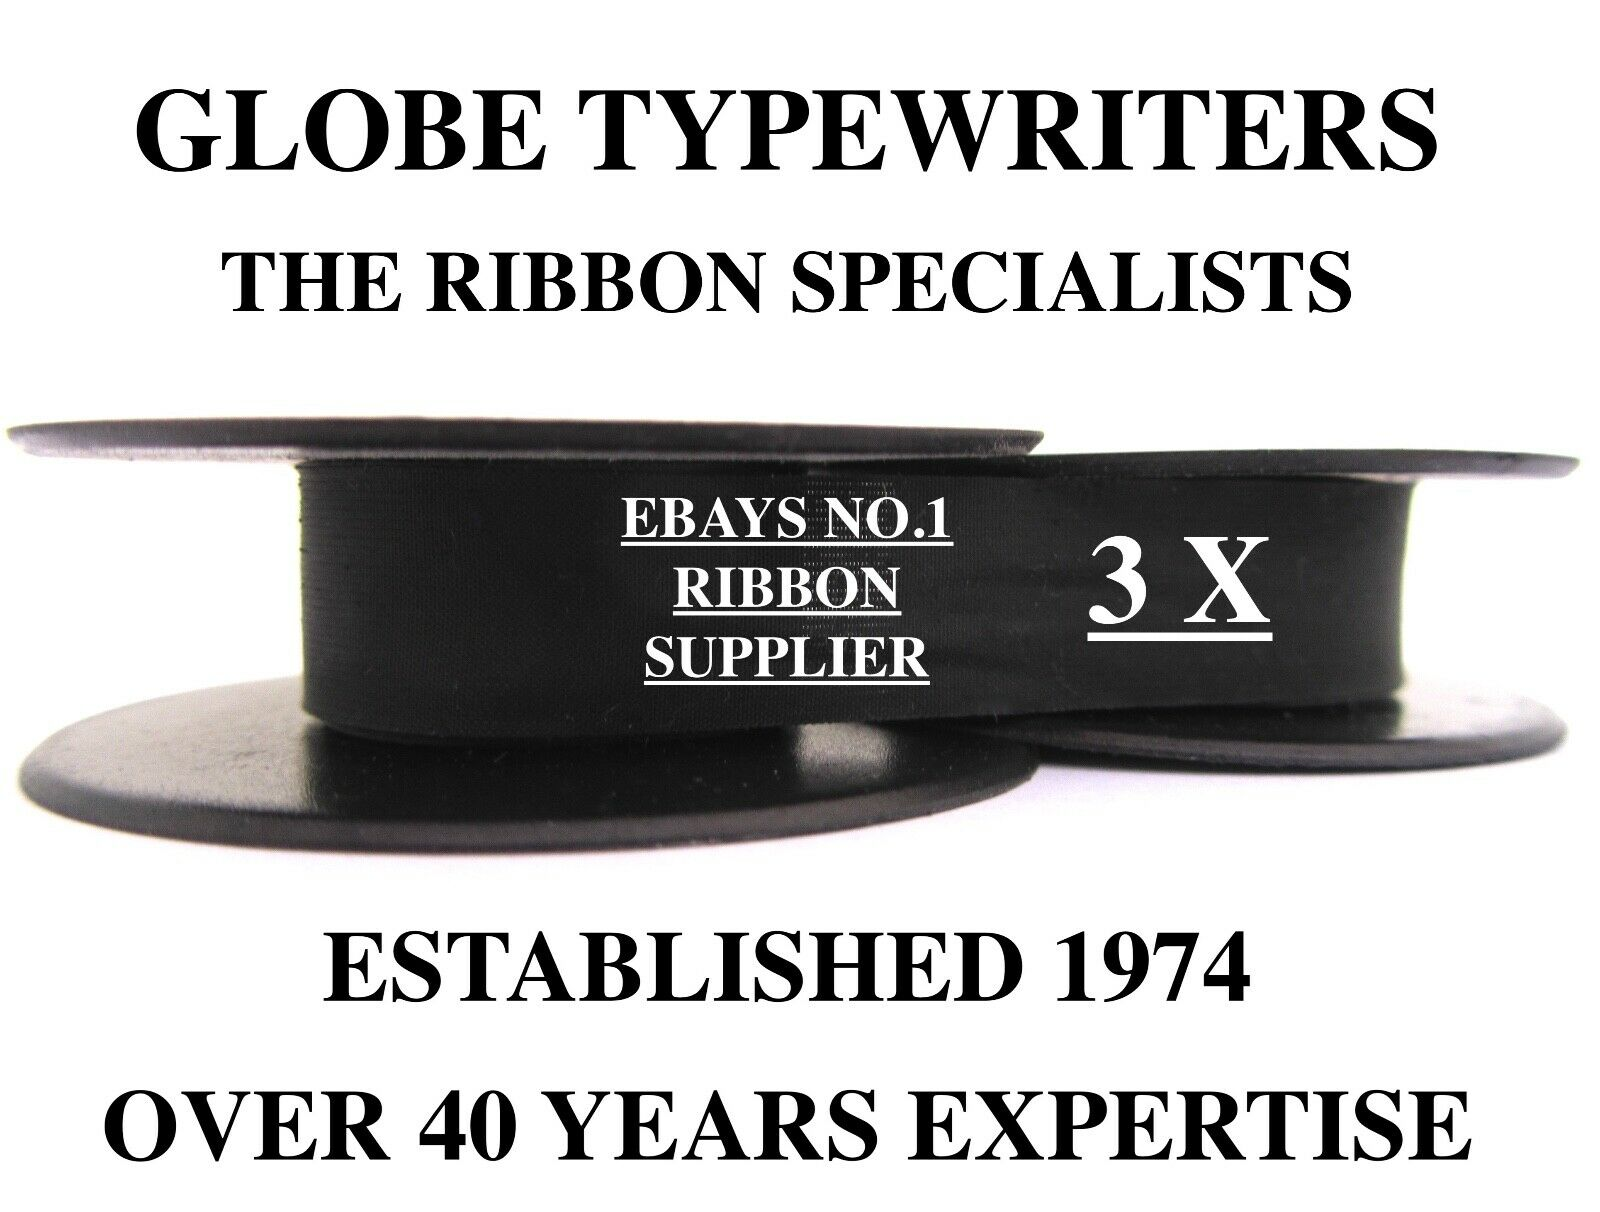 3 x 'SILVER REED SILVERETTE' *BLACK* TOP QUALITY *10 METRE* TYPEWRITER RIBBONS